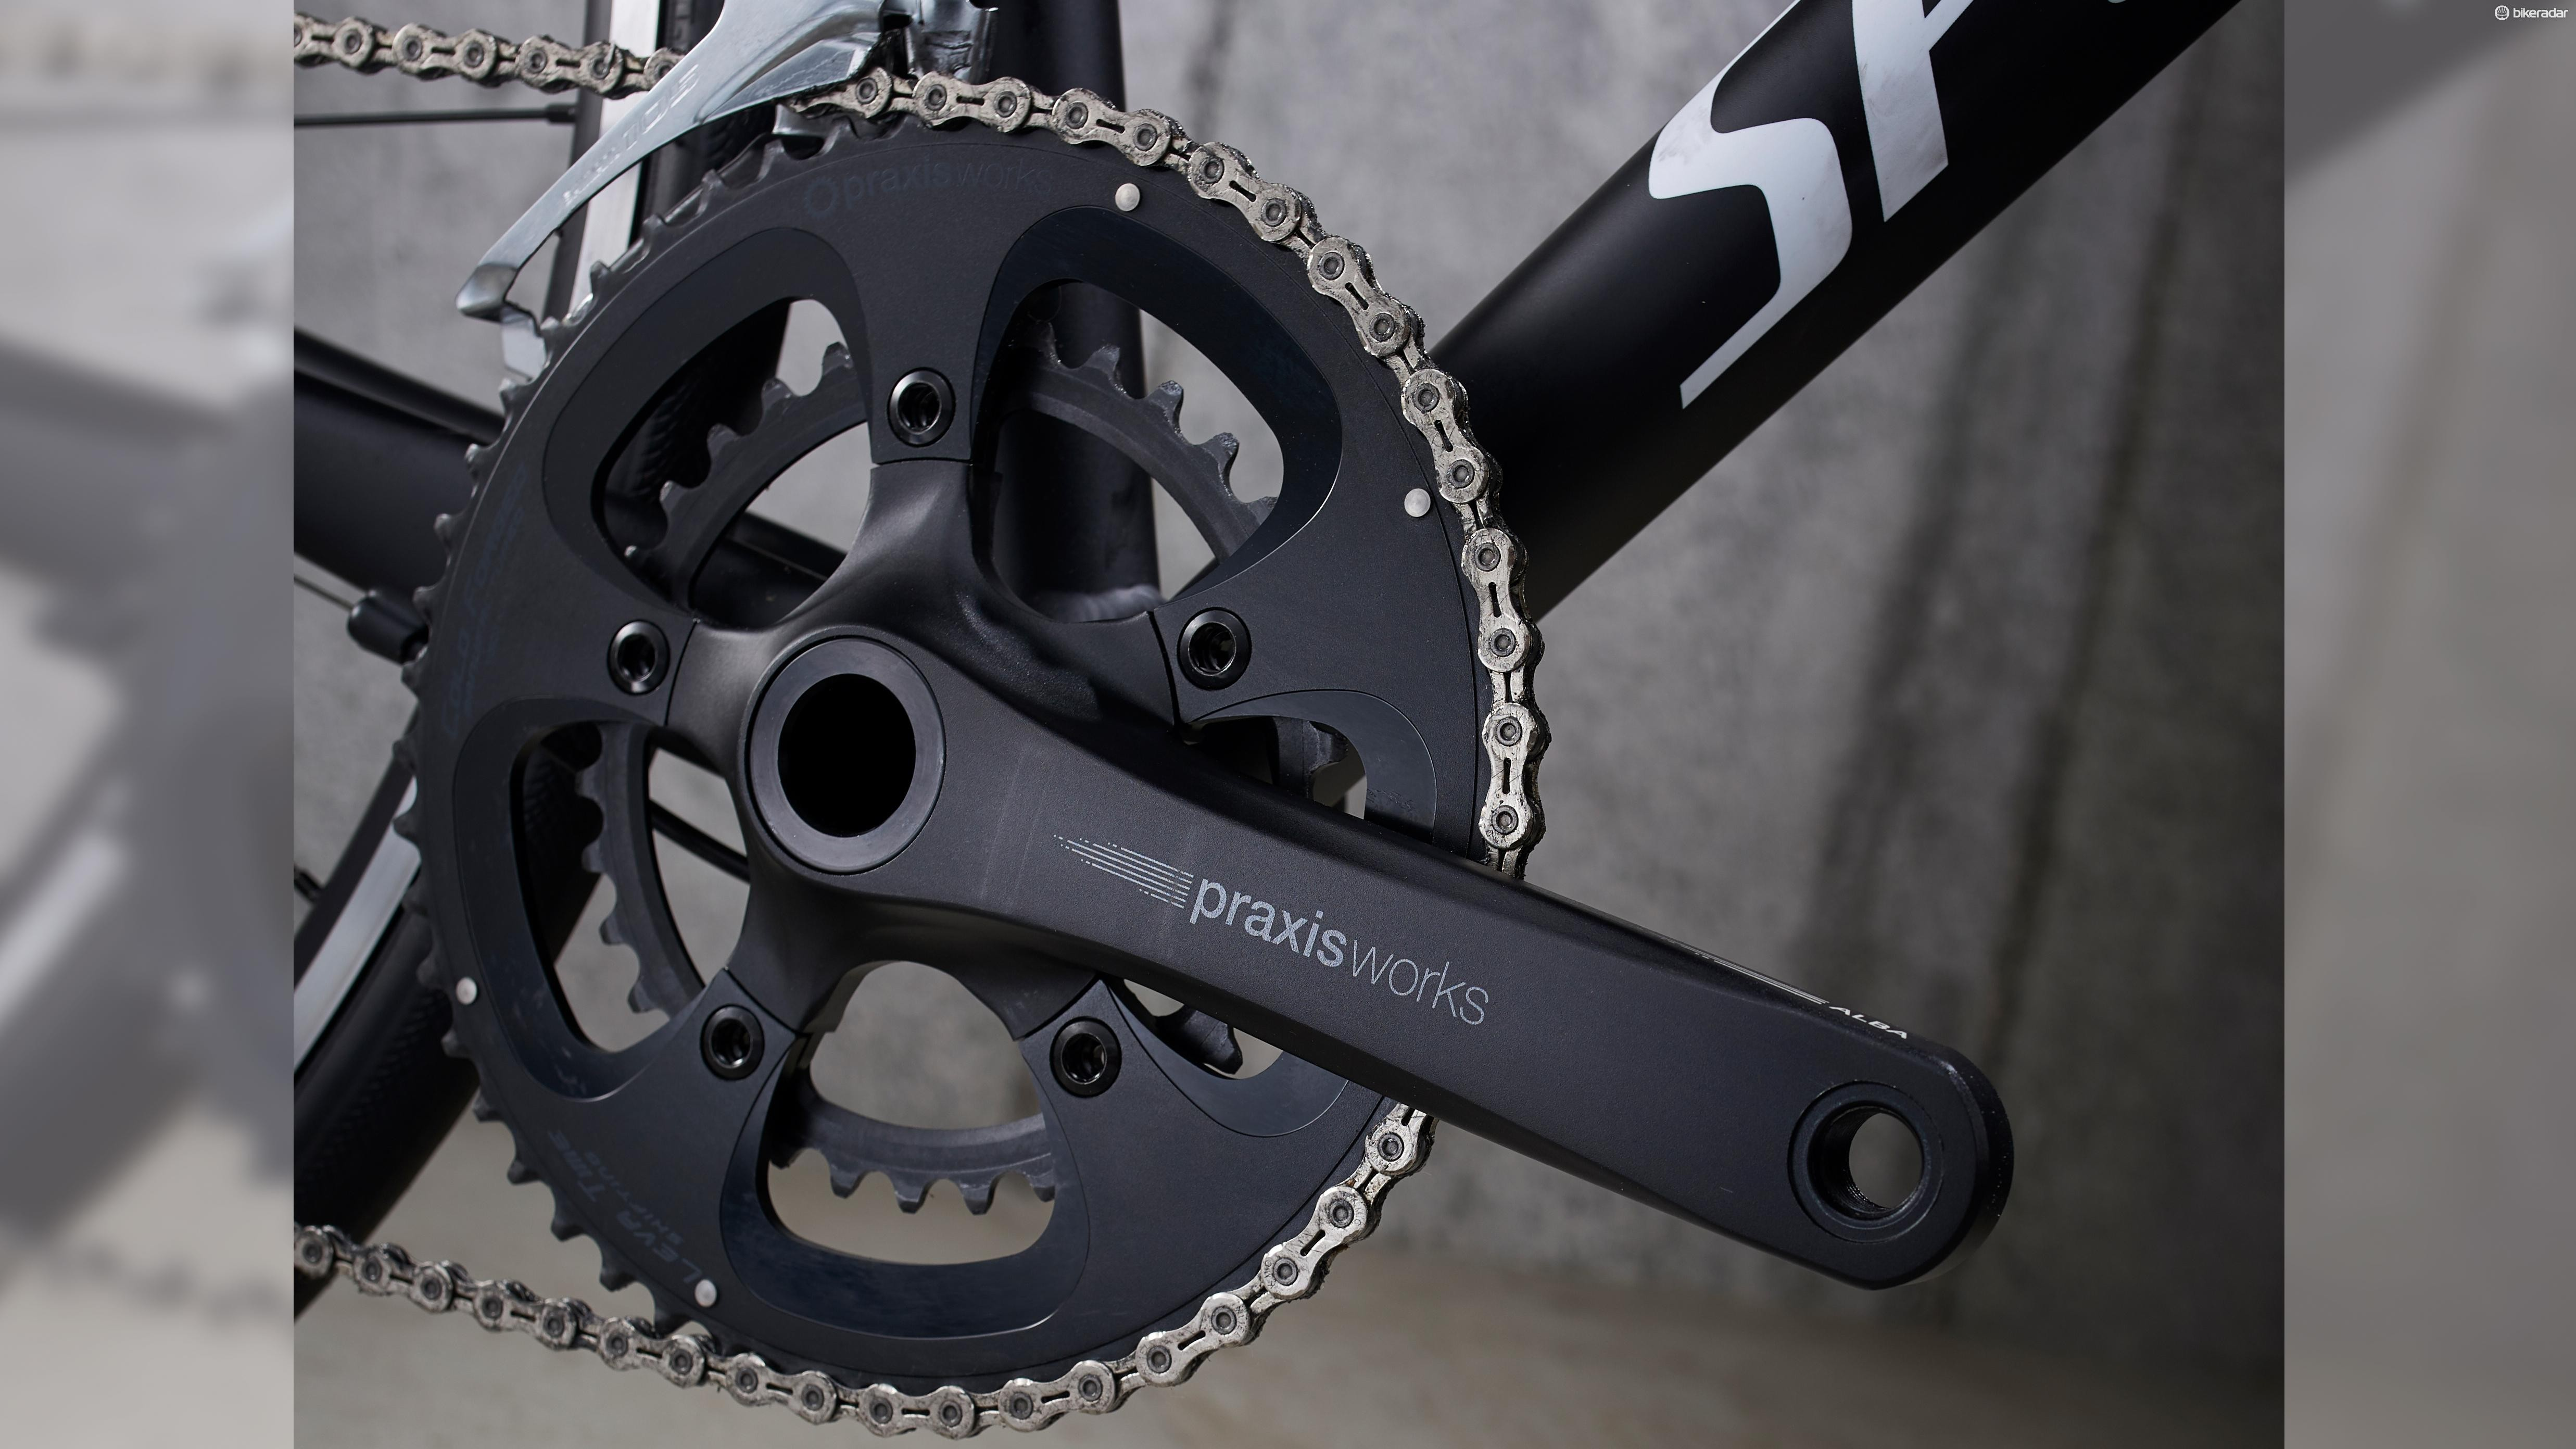 The Praxis Alba crankset deviates from Shimano 105, but worked well